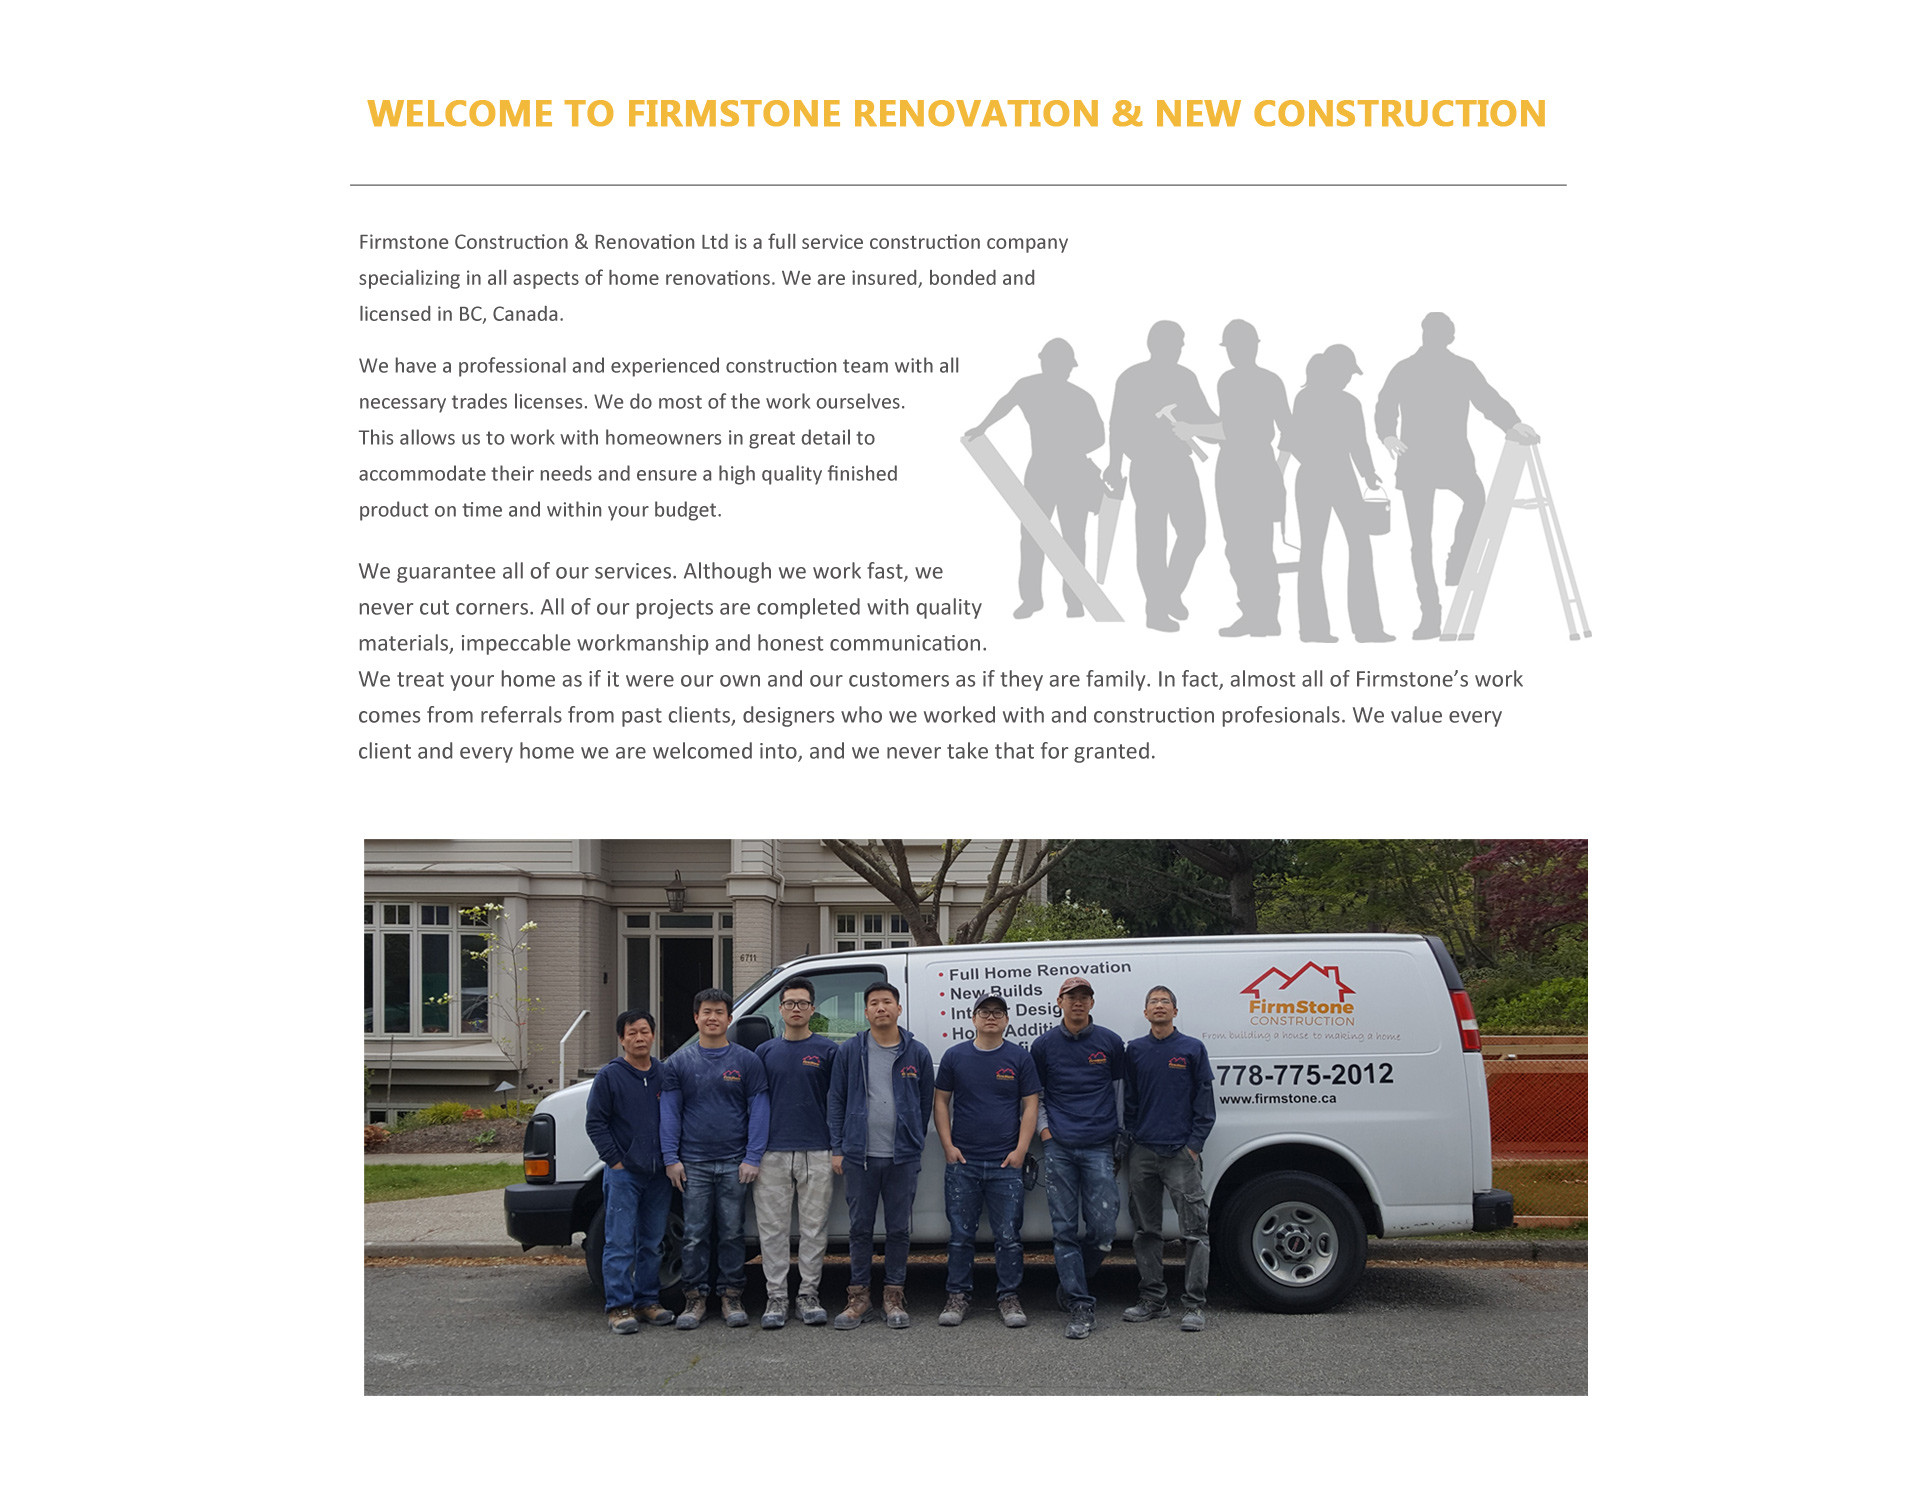 WELCOME TO FIRMSTONE RENOVATION & NEW CONSTRUCTION